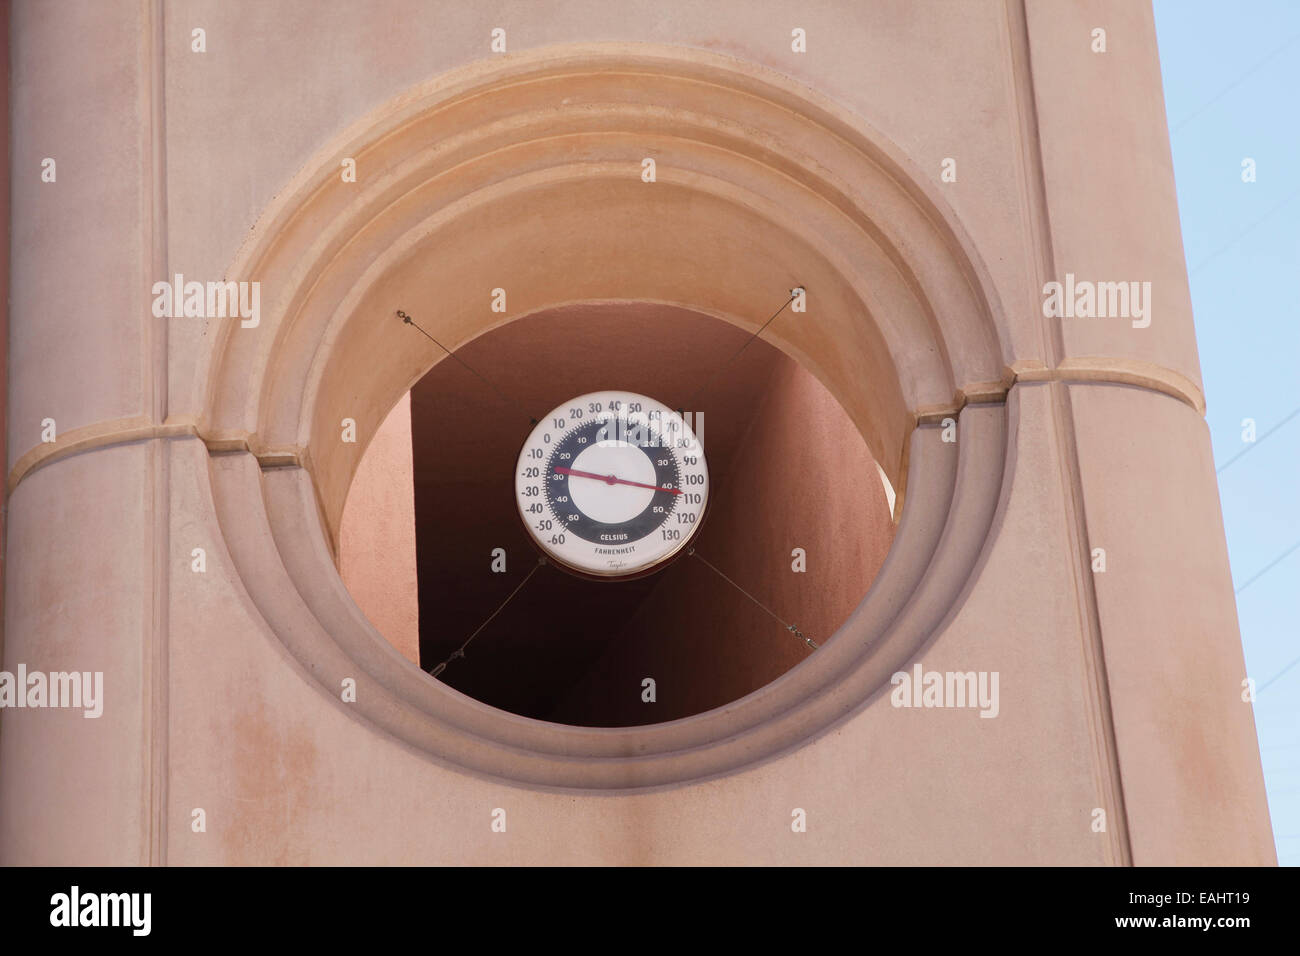 Thermometer in courtyard of Visitor Center at Hoover Dam. - Stock Image